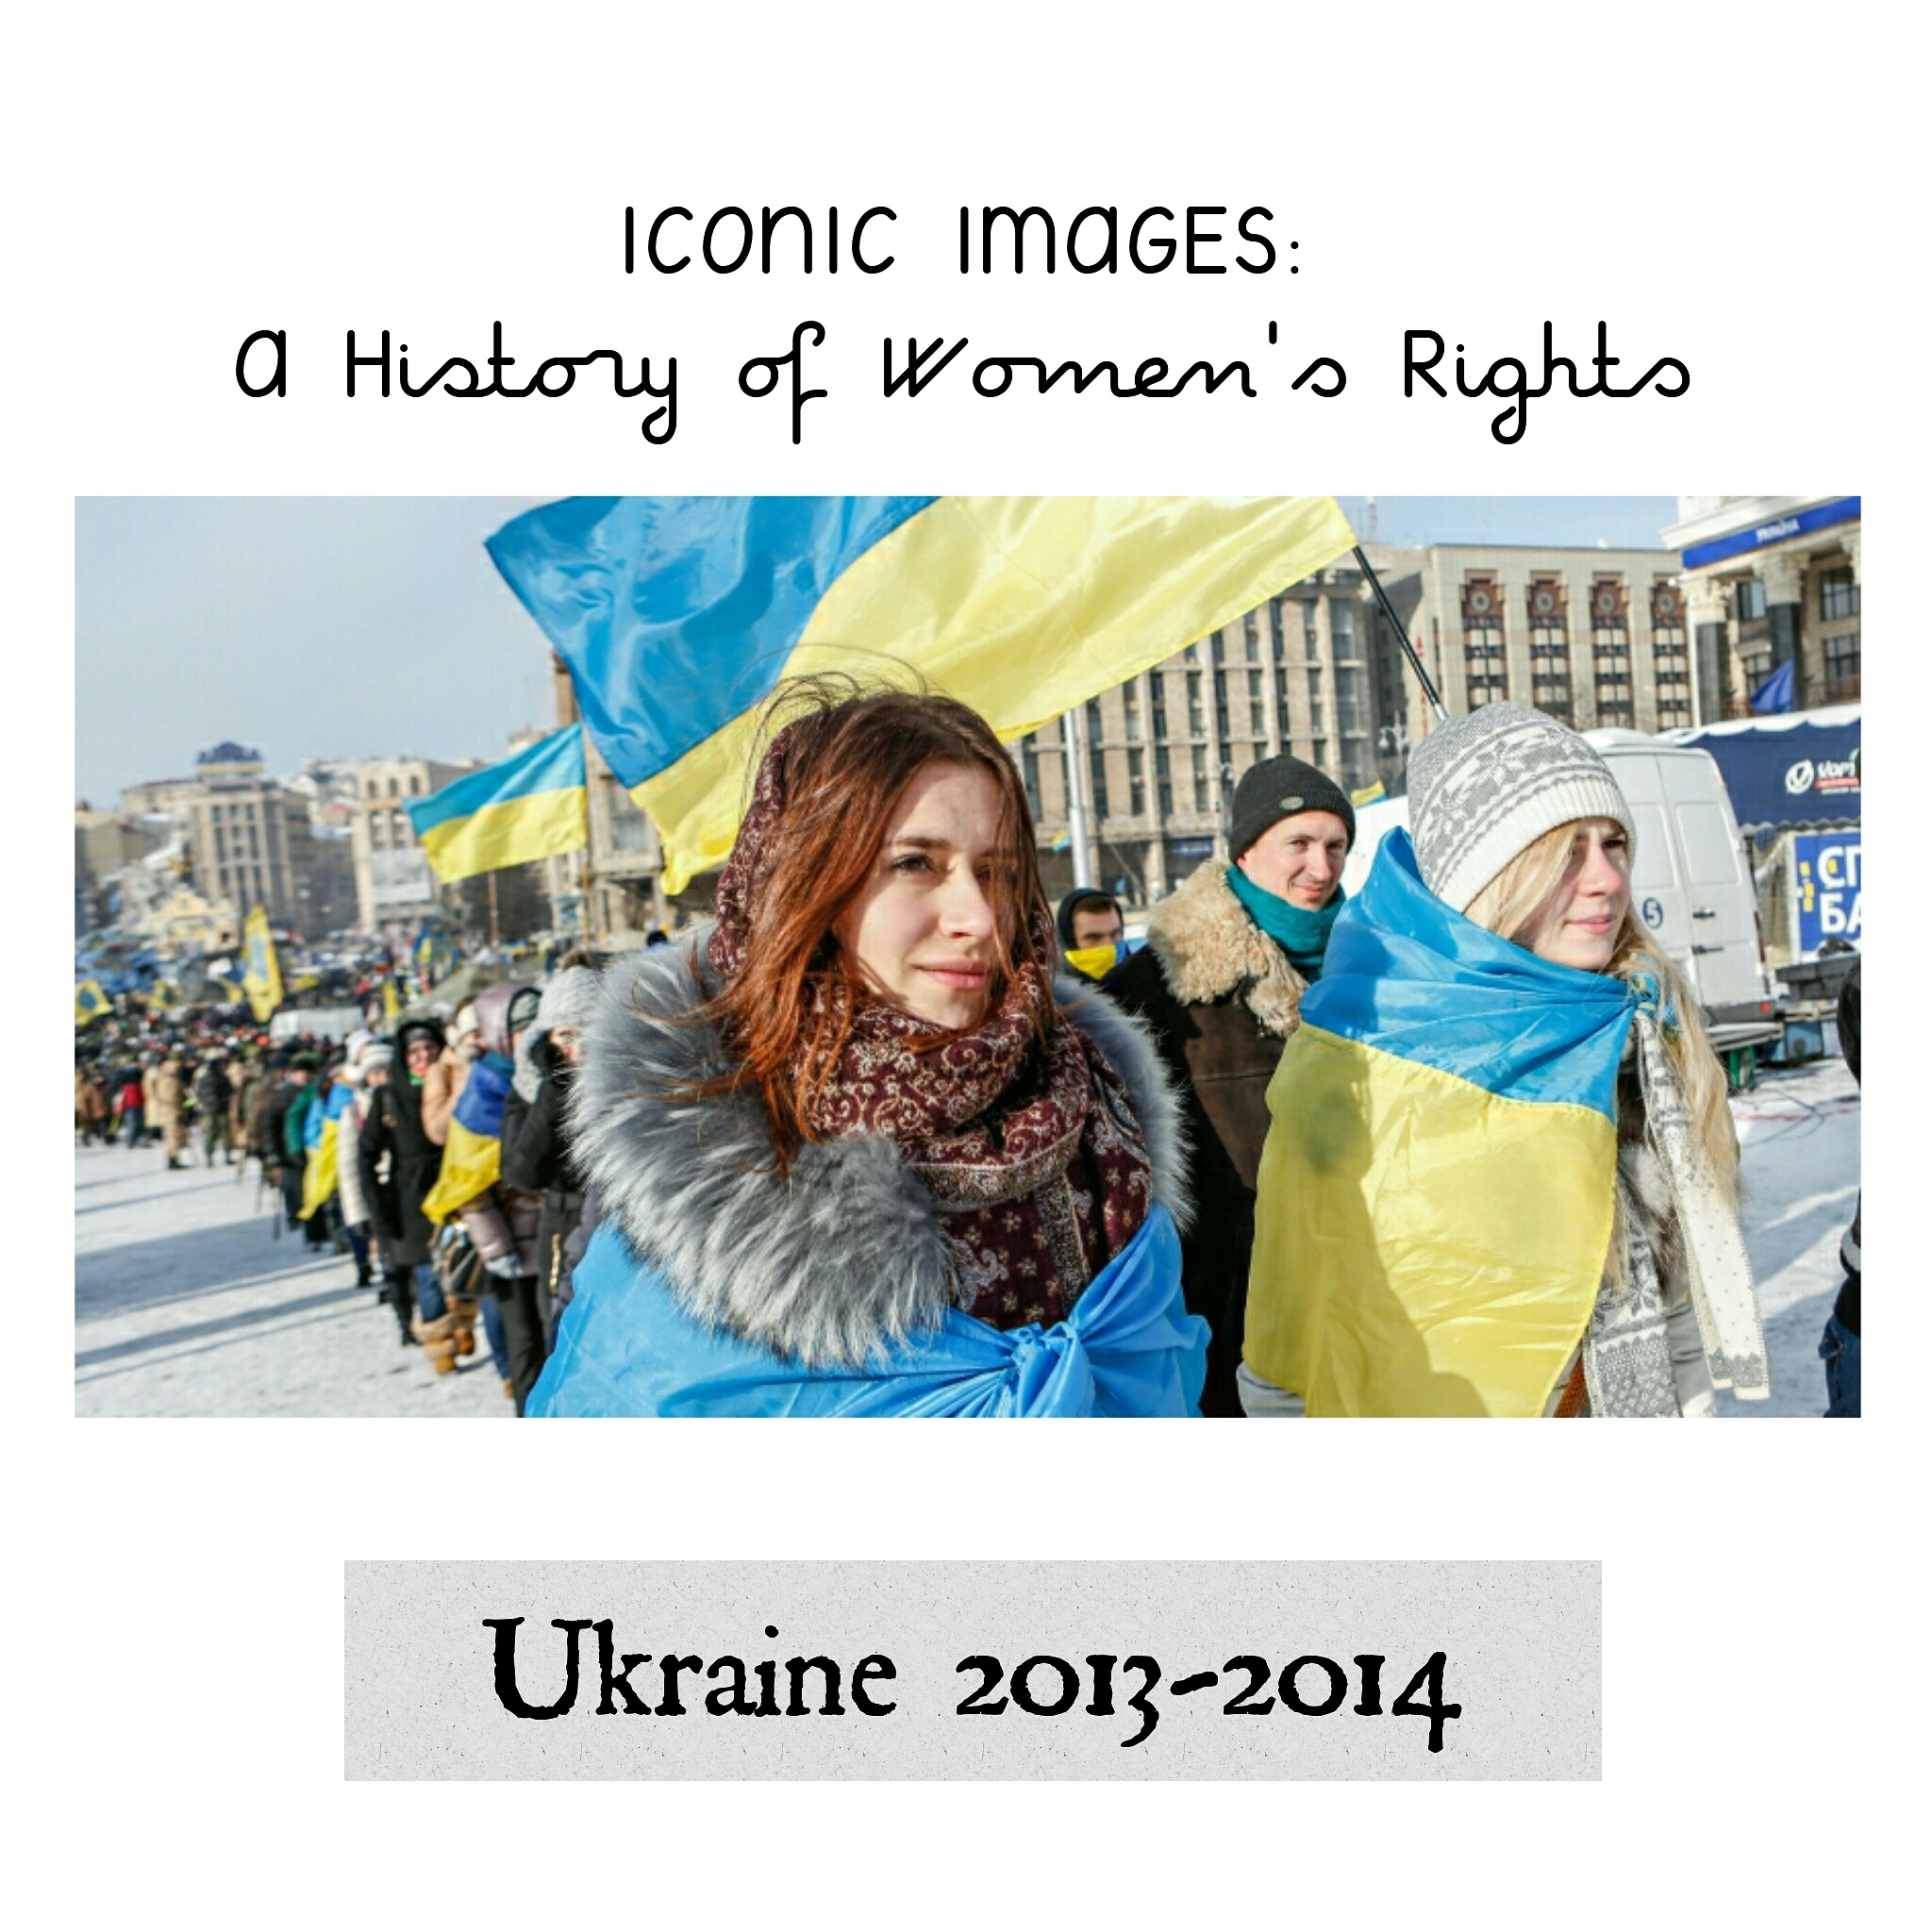 Euromaidan Revolution, Ukraine 2013-14 - Submitted by Tamara Martsenyuk from Ukraine:Events in central Kyiv and other Ukrainian cities, became famous as a so-called